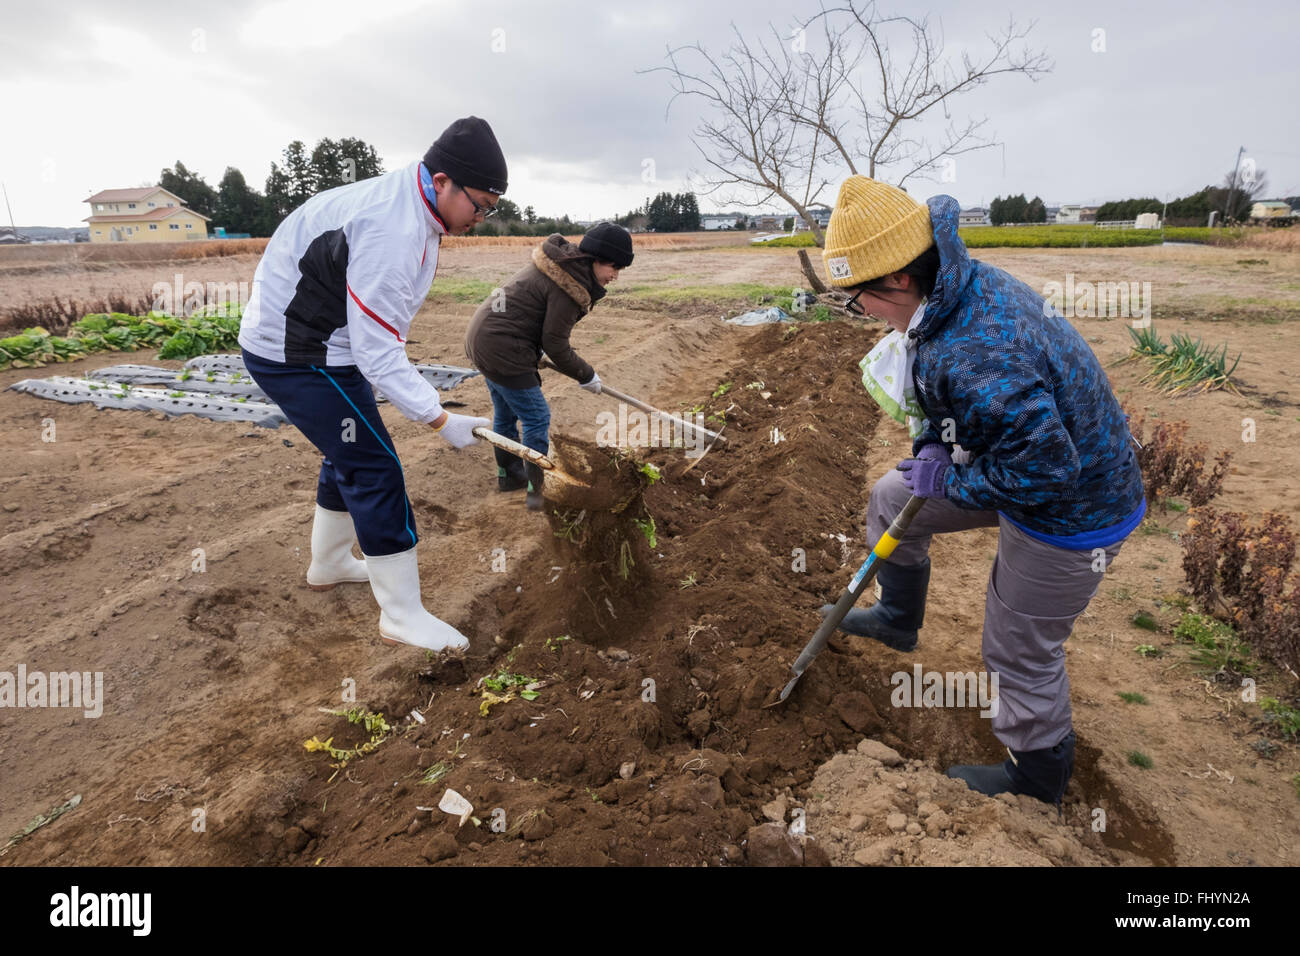 Volunteers from the aid agency Caritas, prepare a vegetable plot on land that has been affected by the 2011 earthquake, - Stock Image